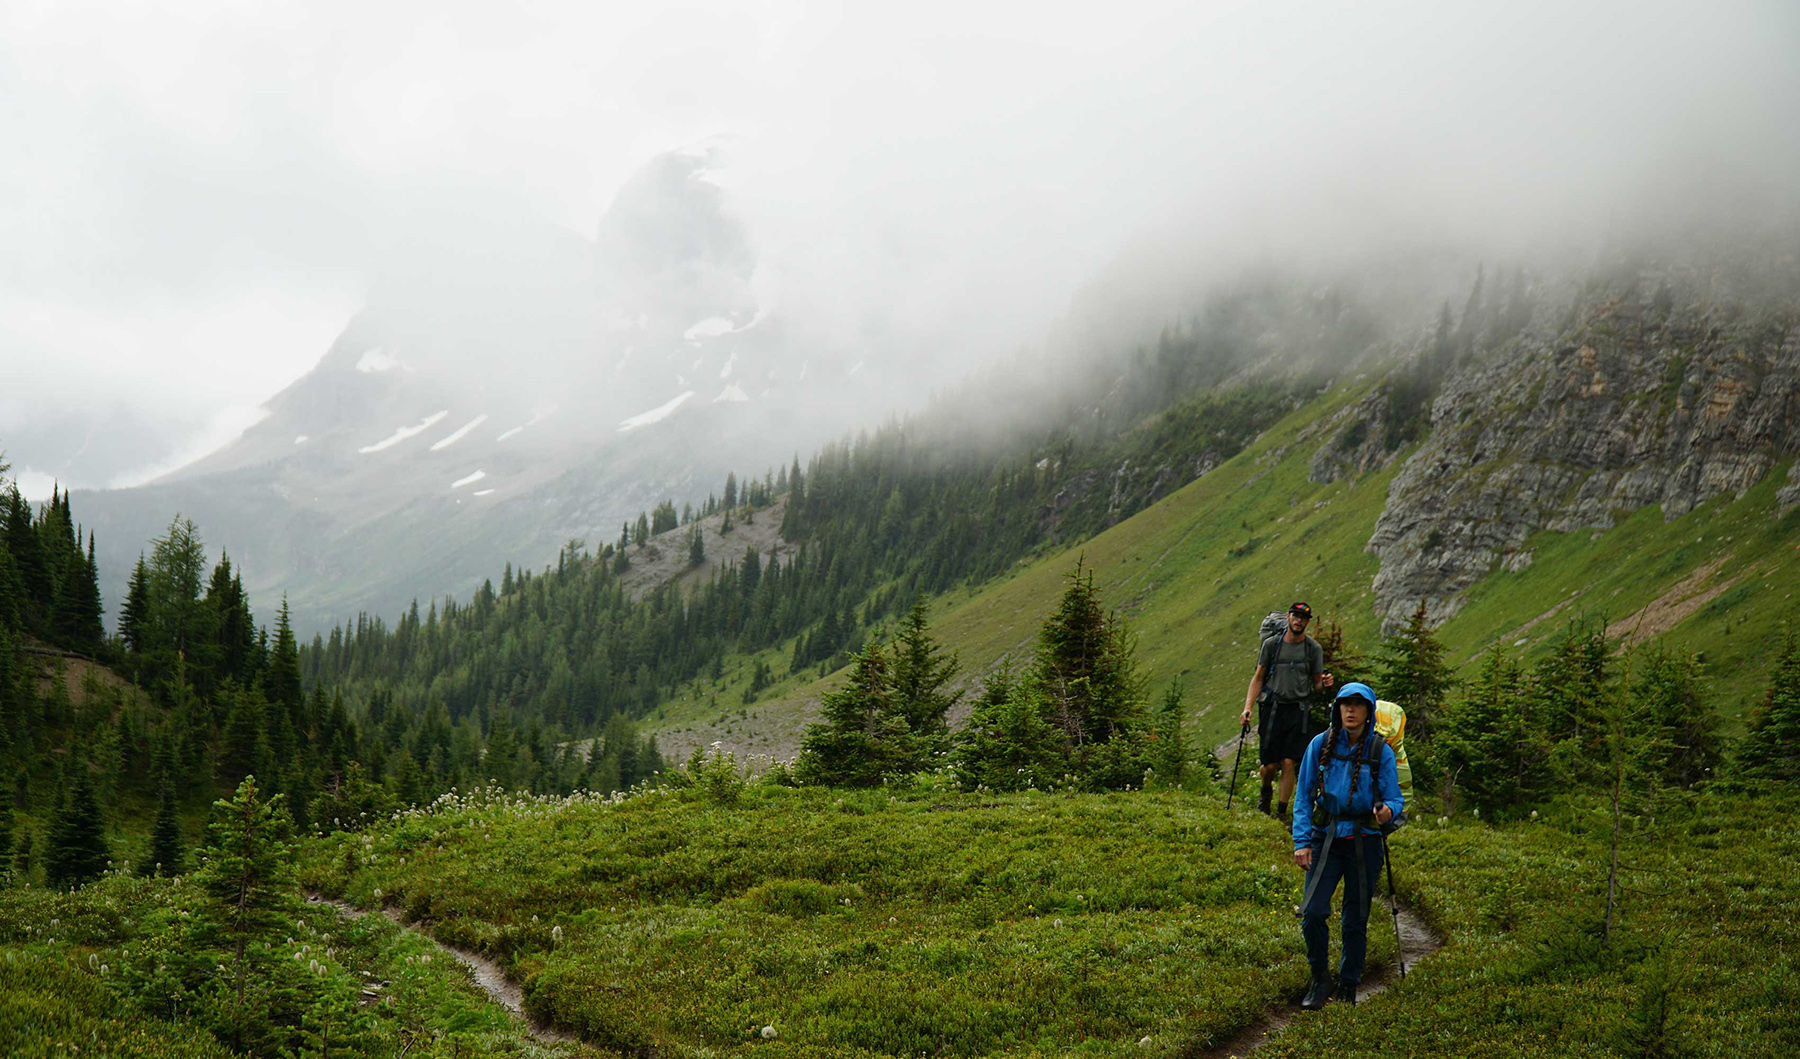 backpacking in the rain and mist